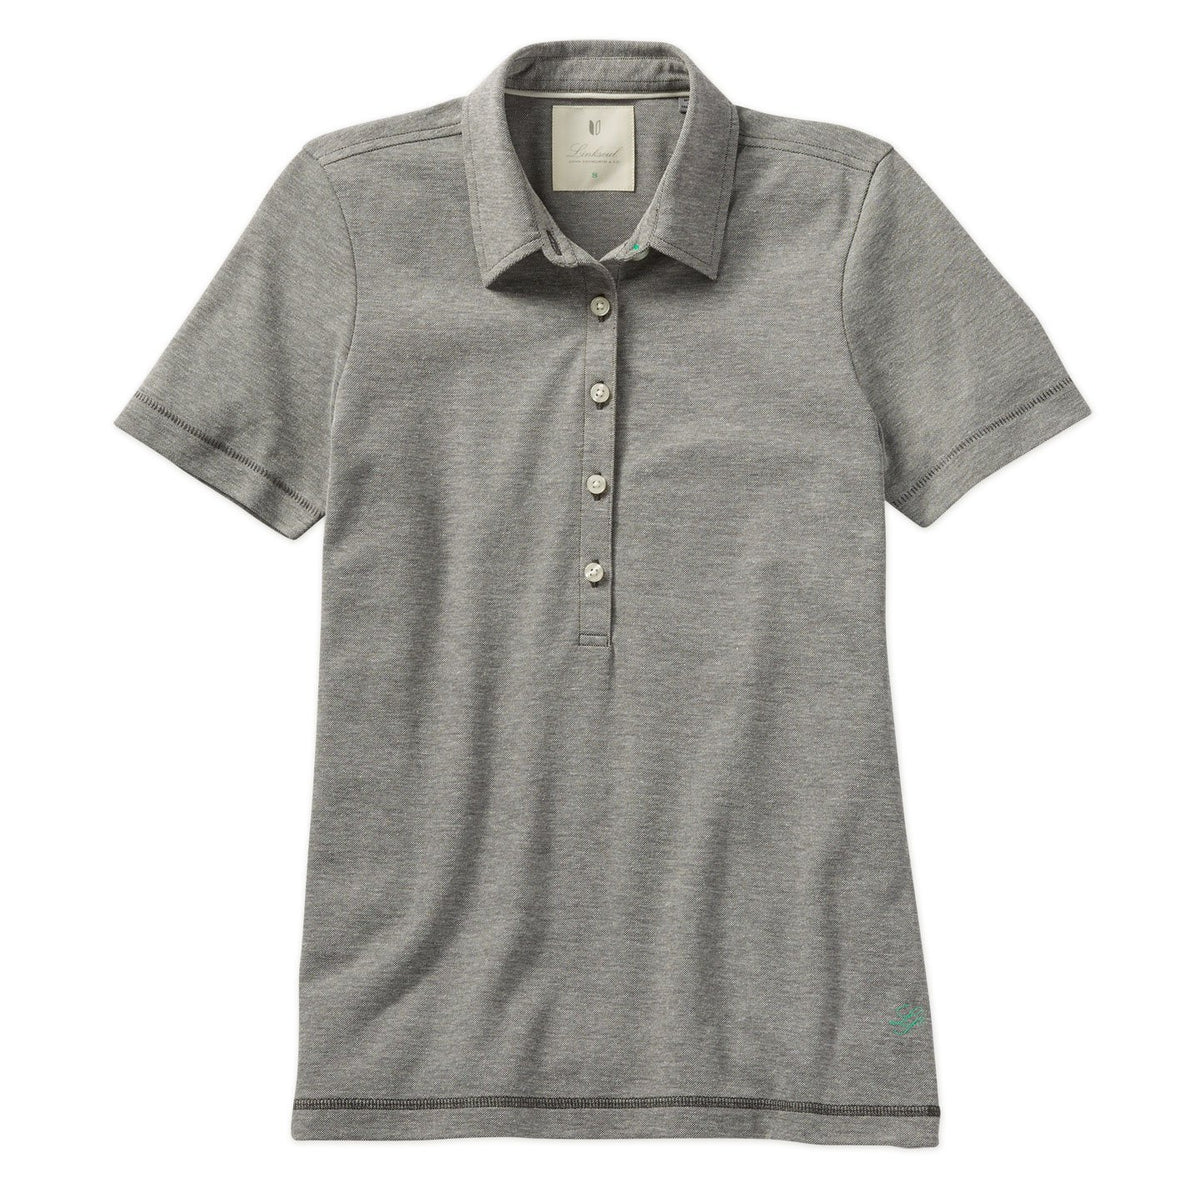 Women's Double Knit Dry-Tech Polo